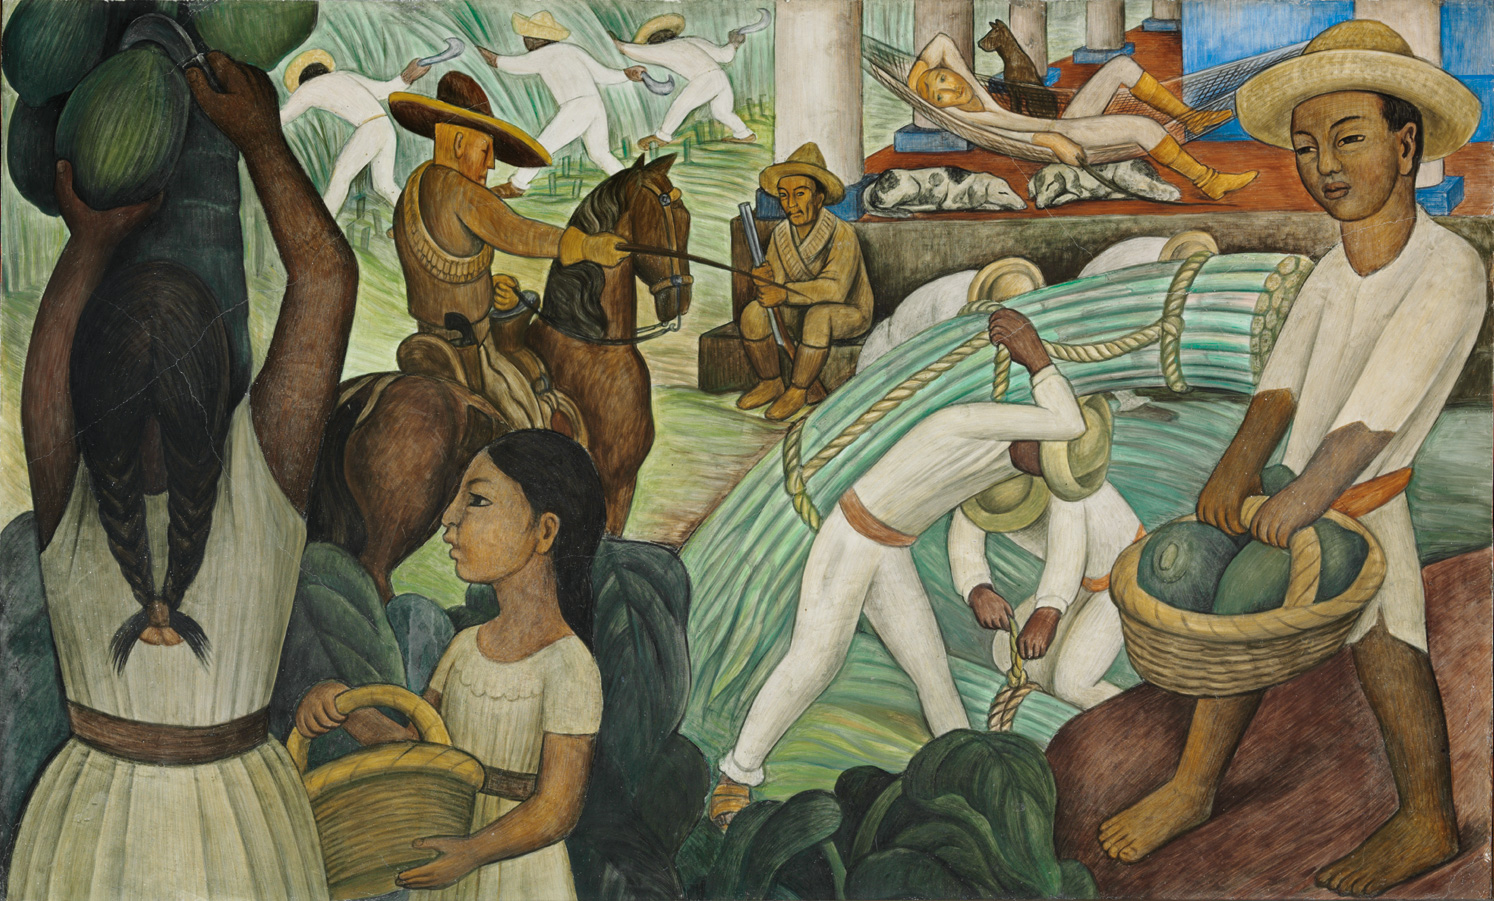 - Sugarcane, 1931, mural, fresco on concrete, Diego Rivera (1886-1957)